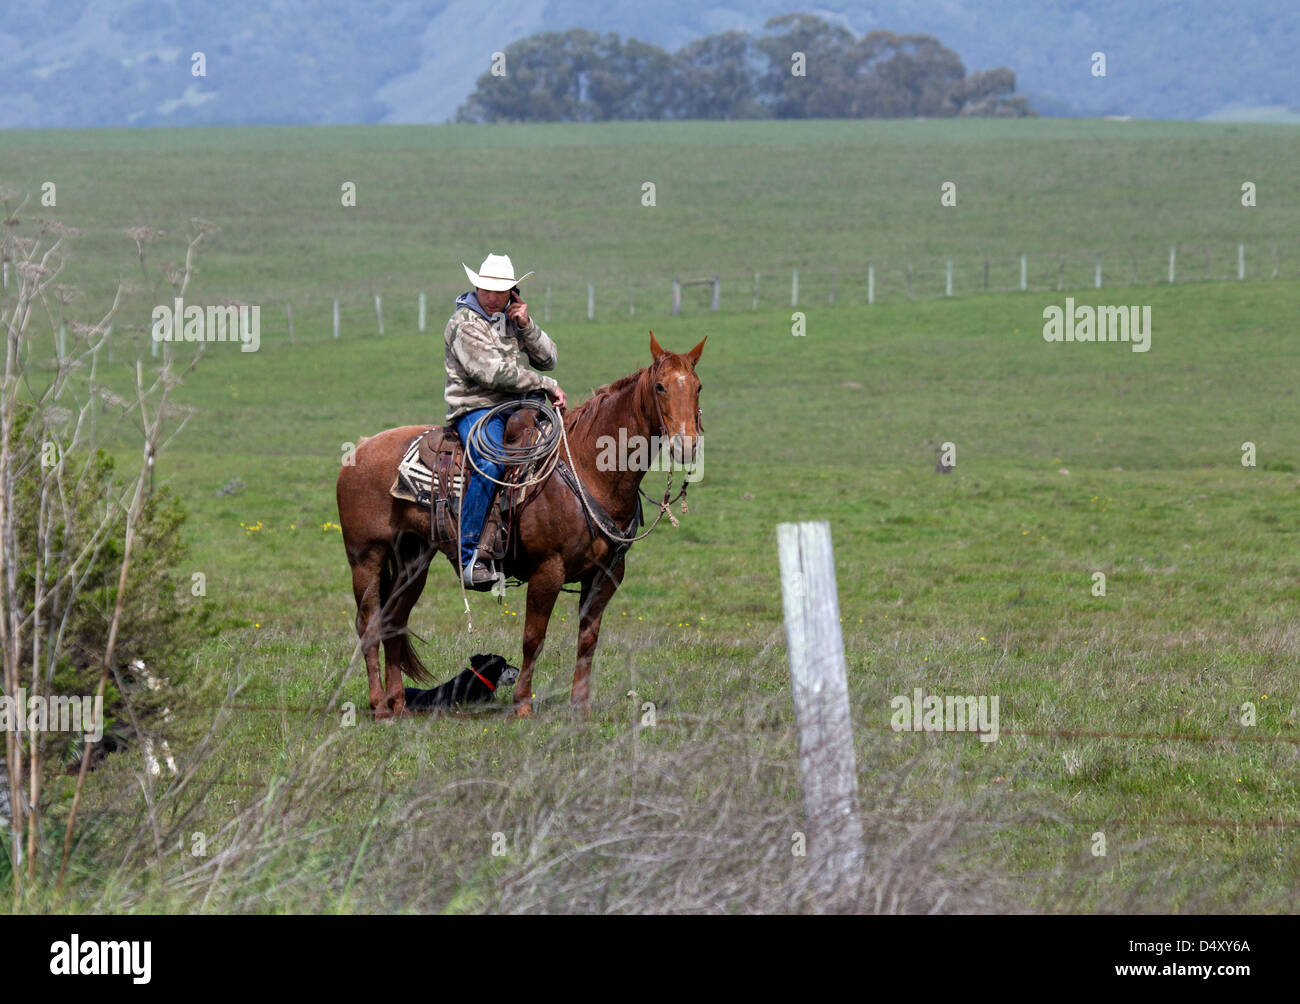 Modern Cowboy on Horseback and Talking on Cell Phone - Stock Image